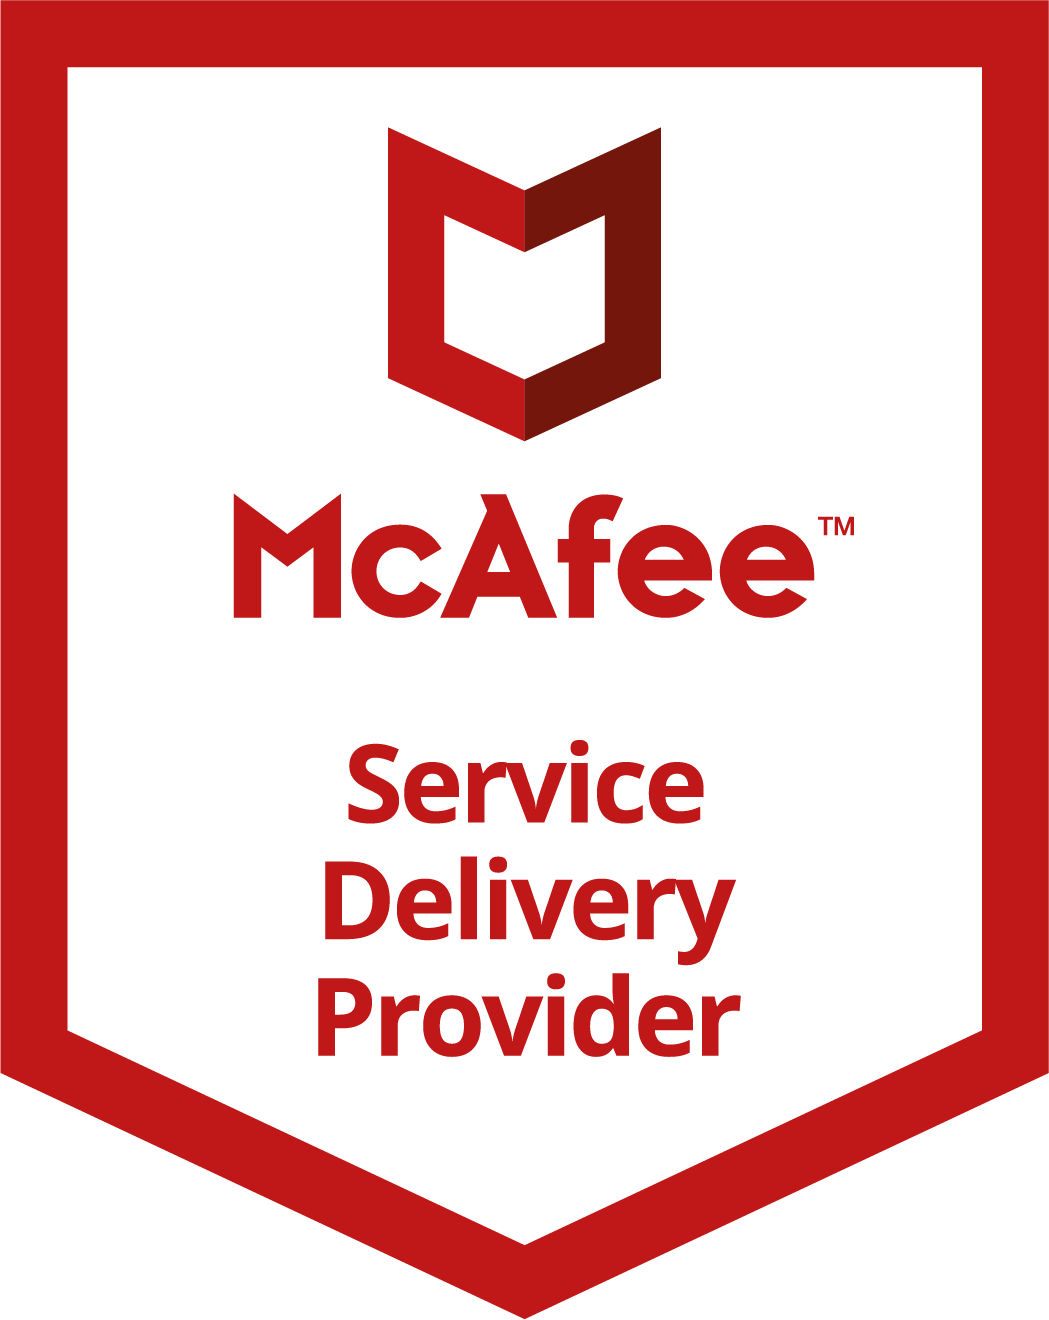 McAFEE_SERVICE_DELIVERY_PROVIDER_RGB